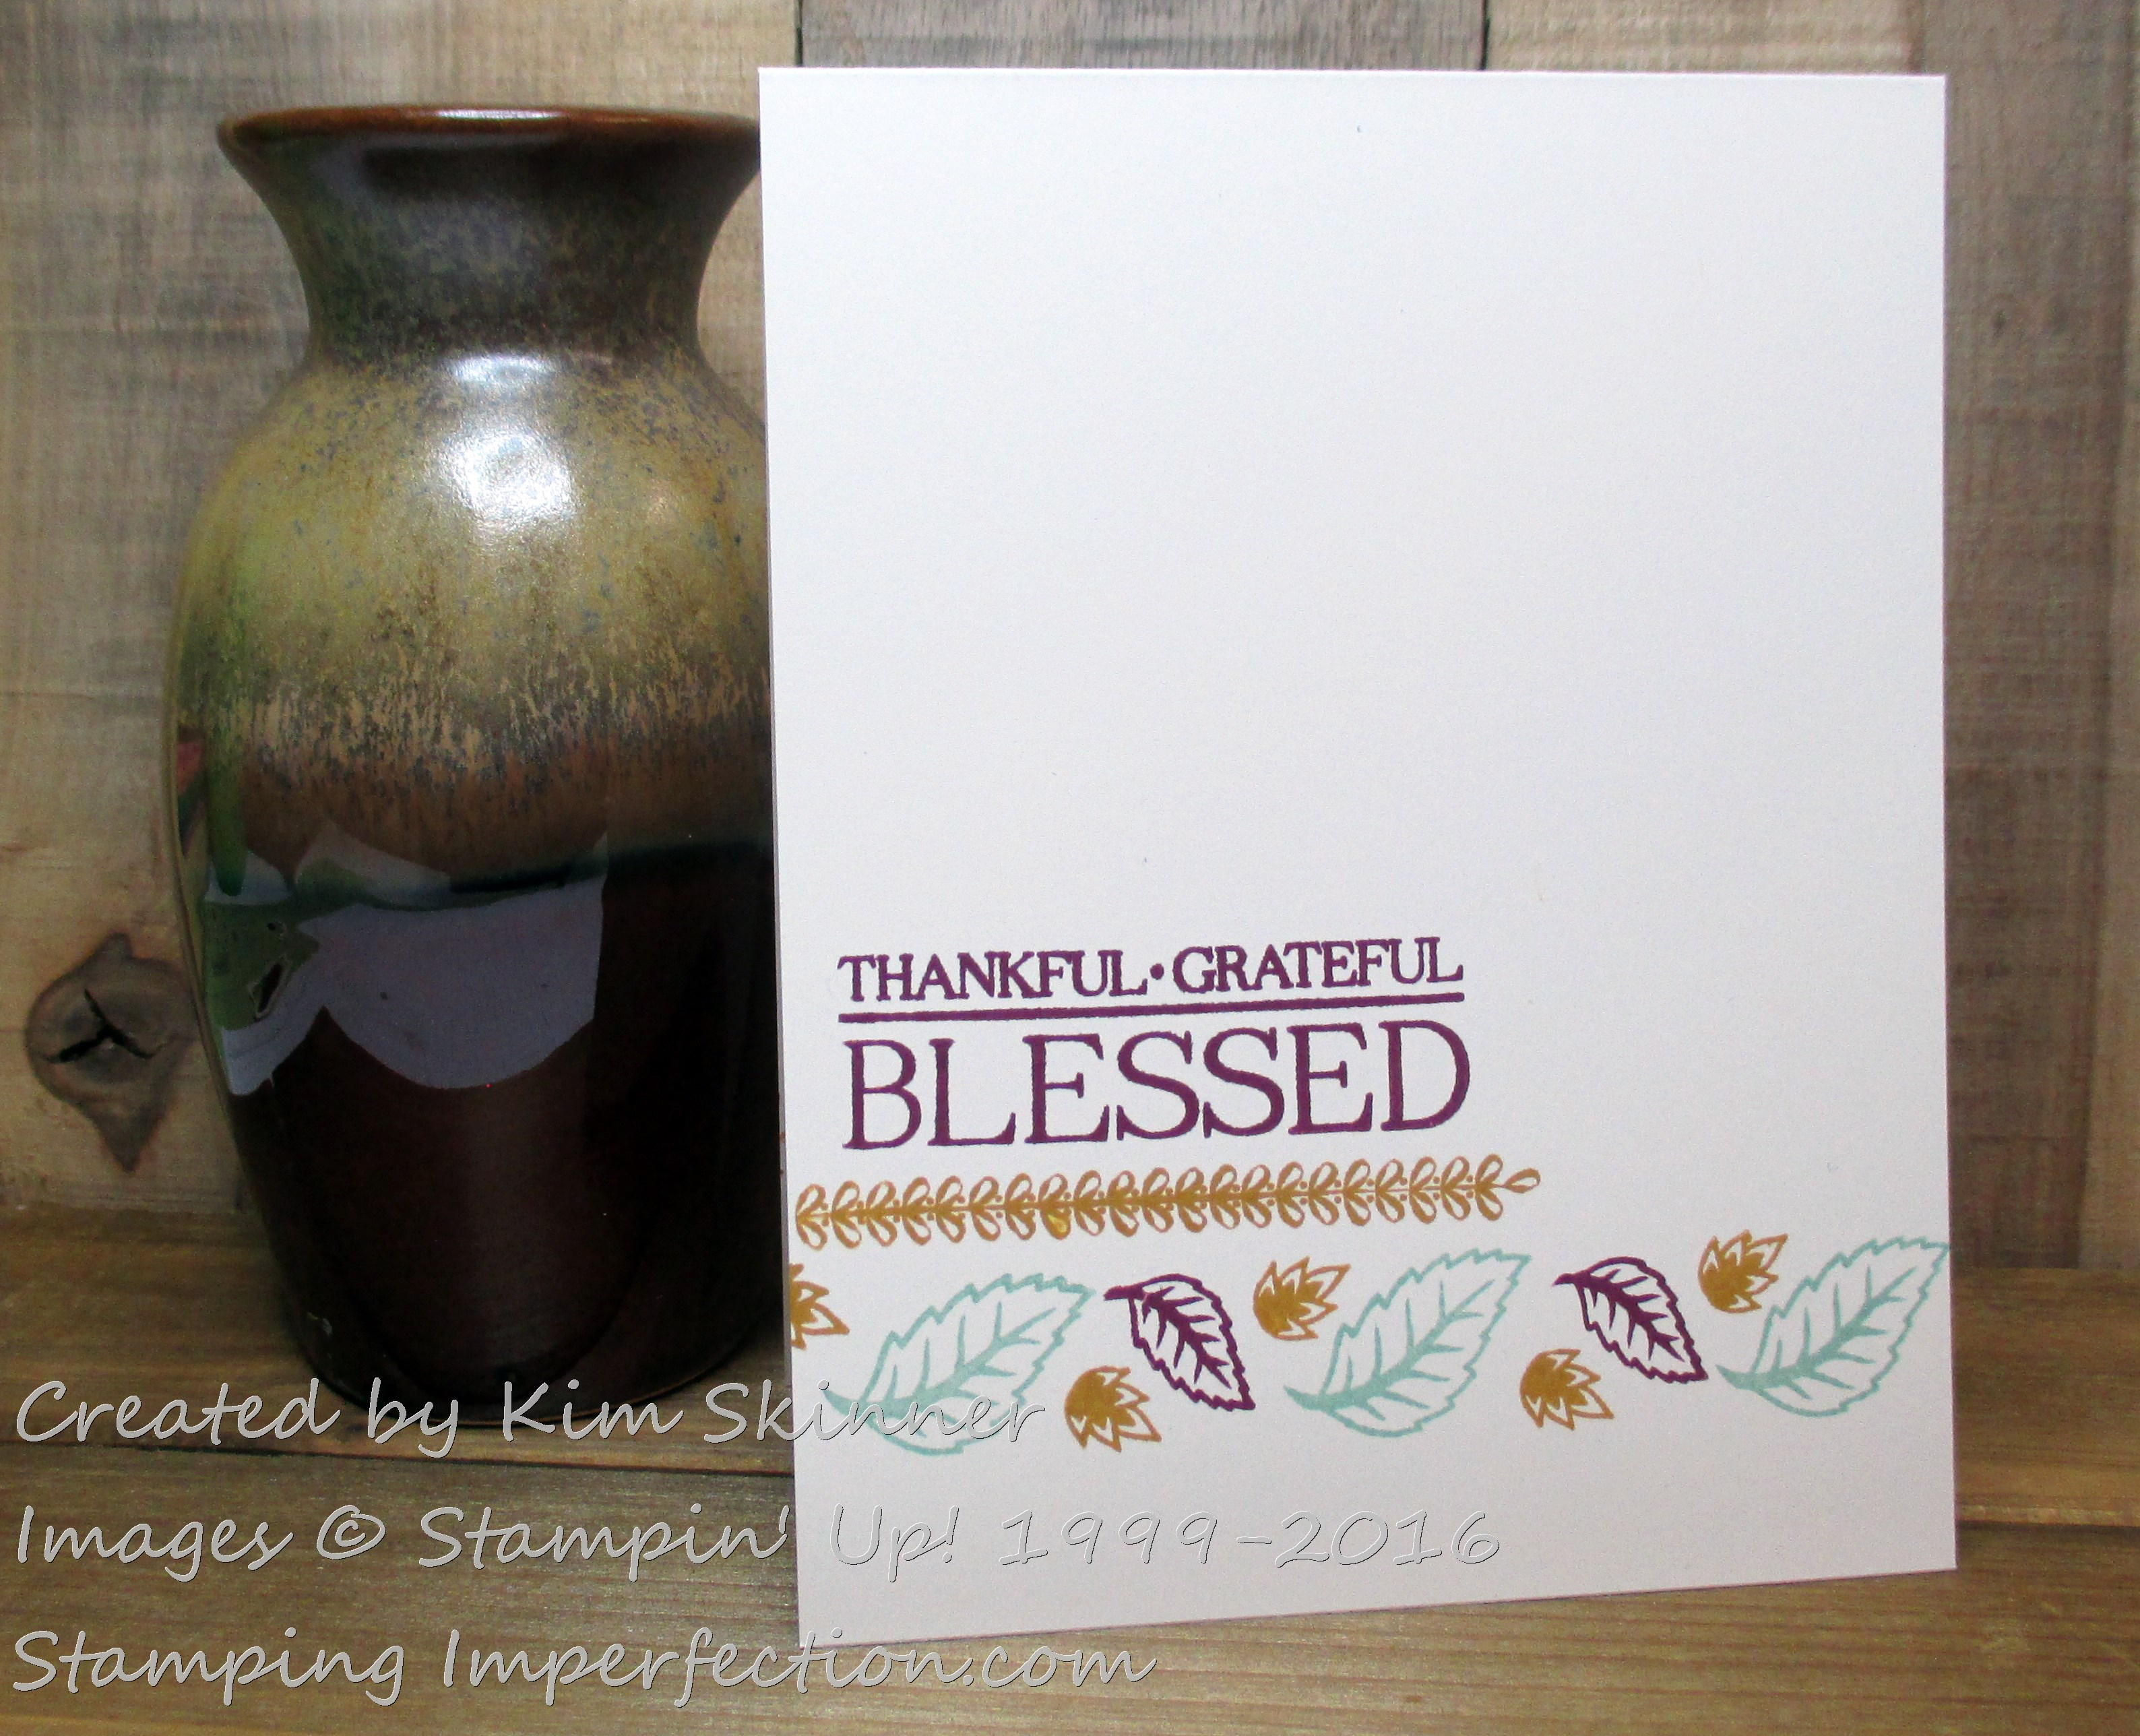 Stamping Imperfection more Paisley and Posies